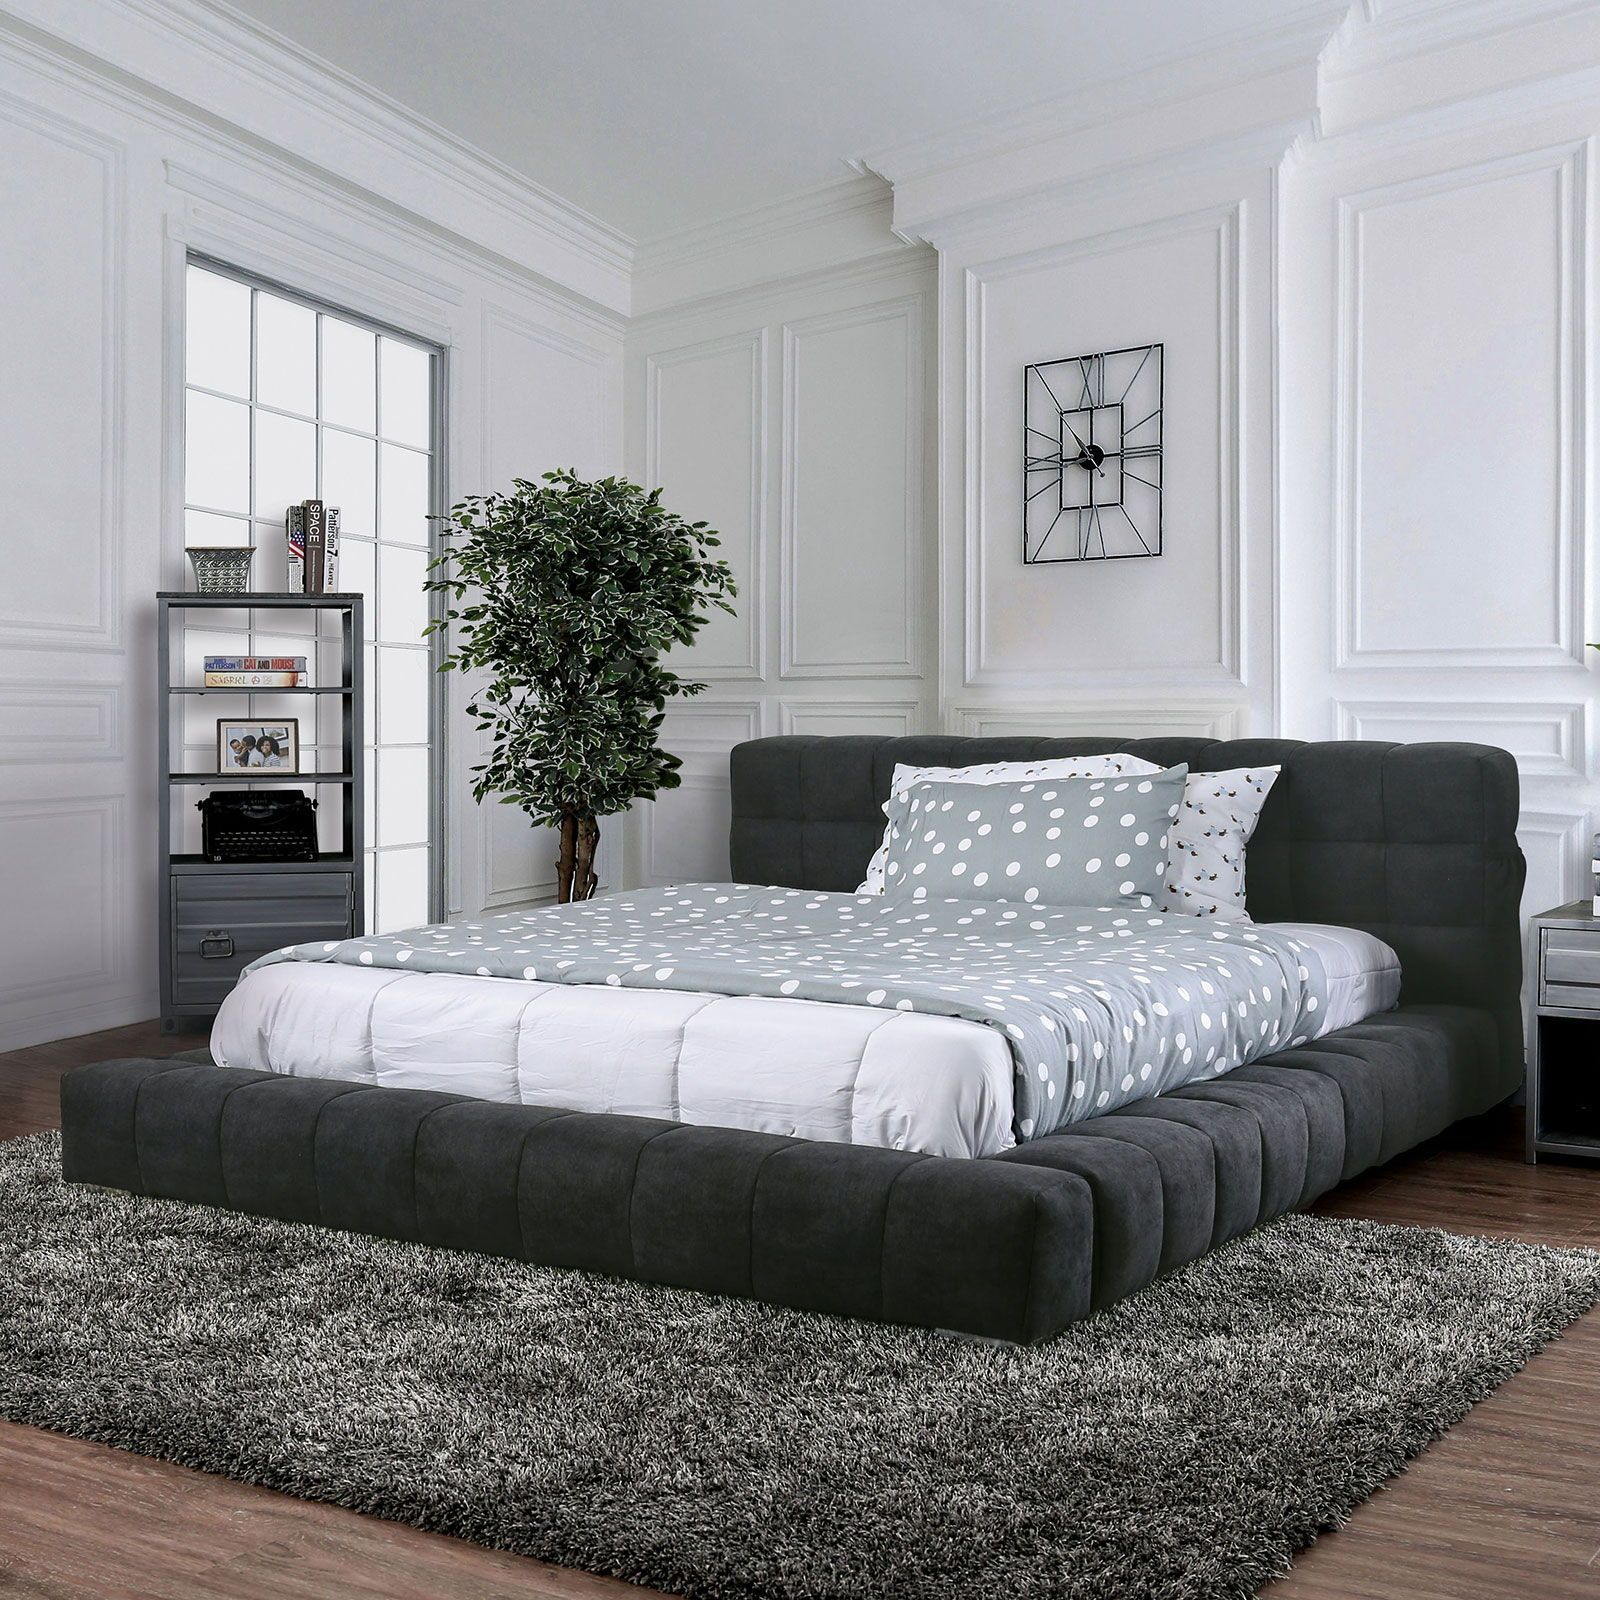 Wolsey Cal King Bed Dark Gray Queen In 2021 King Size Bedroom Sets Low Bed Frame Low Platform Bed Low profile king bed frame